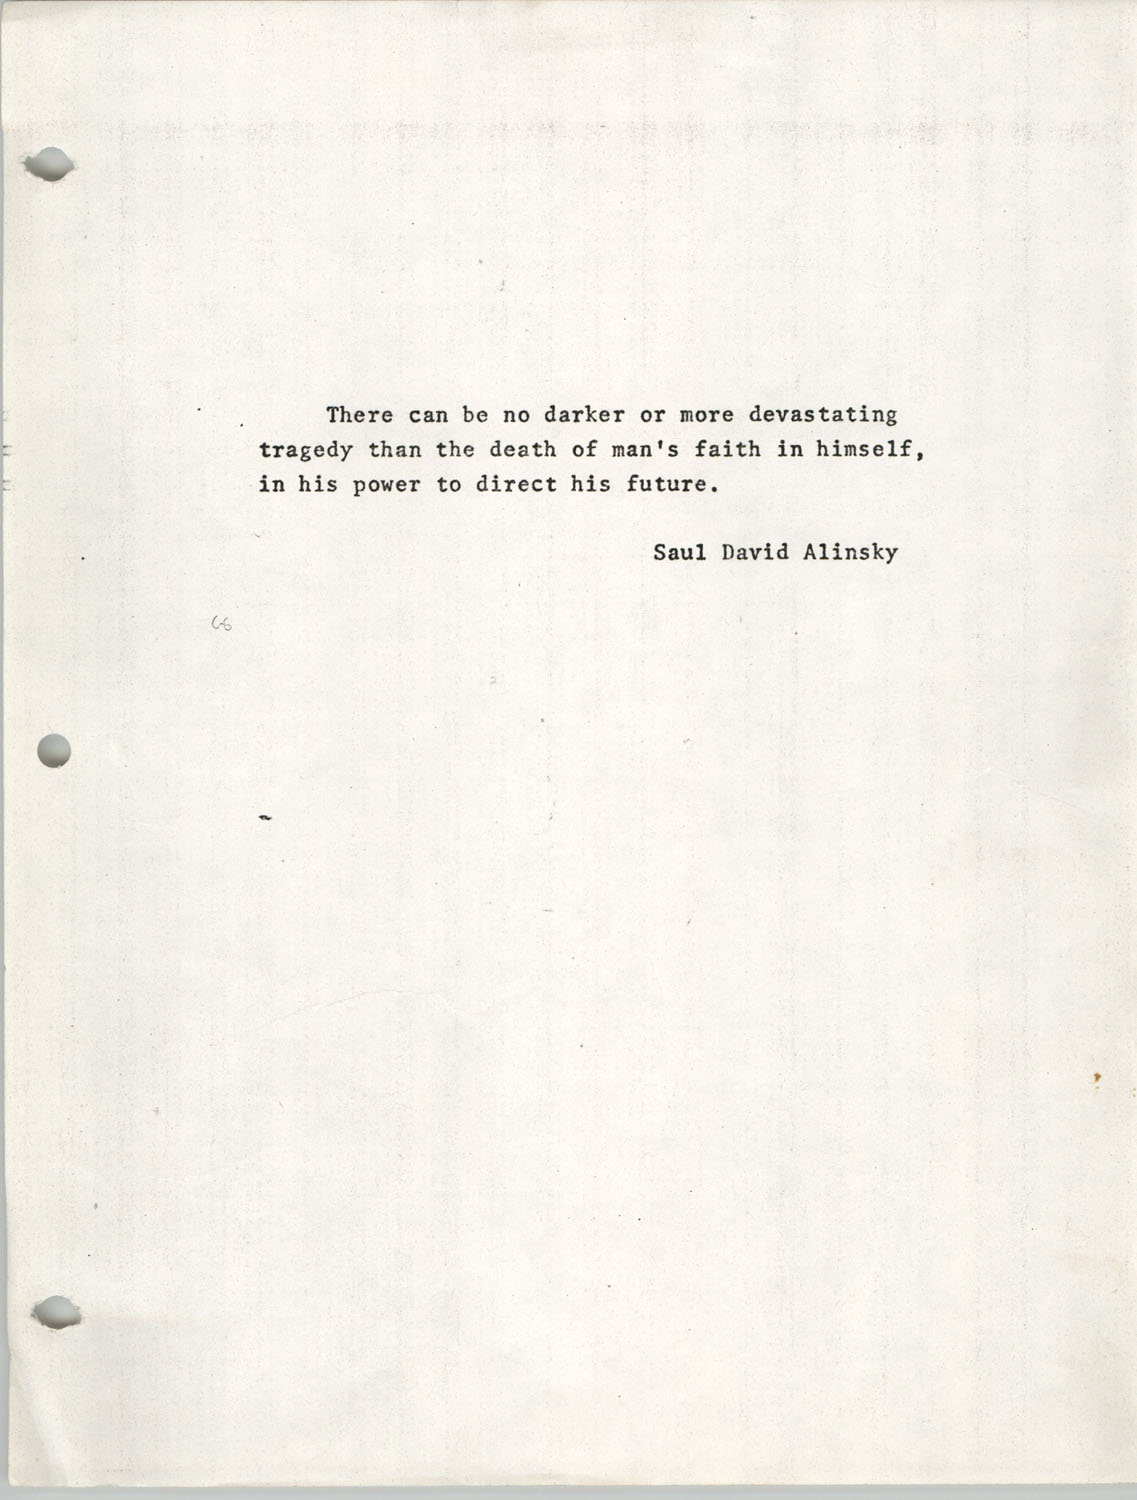 Citizen Participation. Democracy and Social Change, December 1, 1969, Epigraph Page